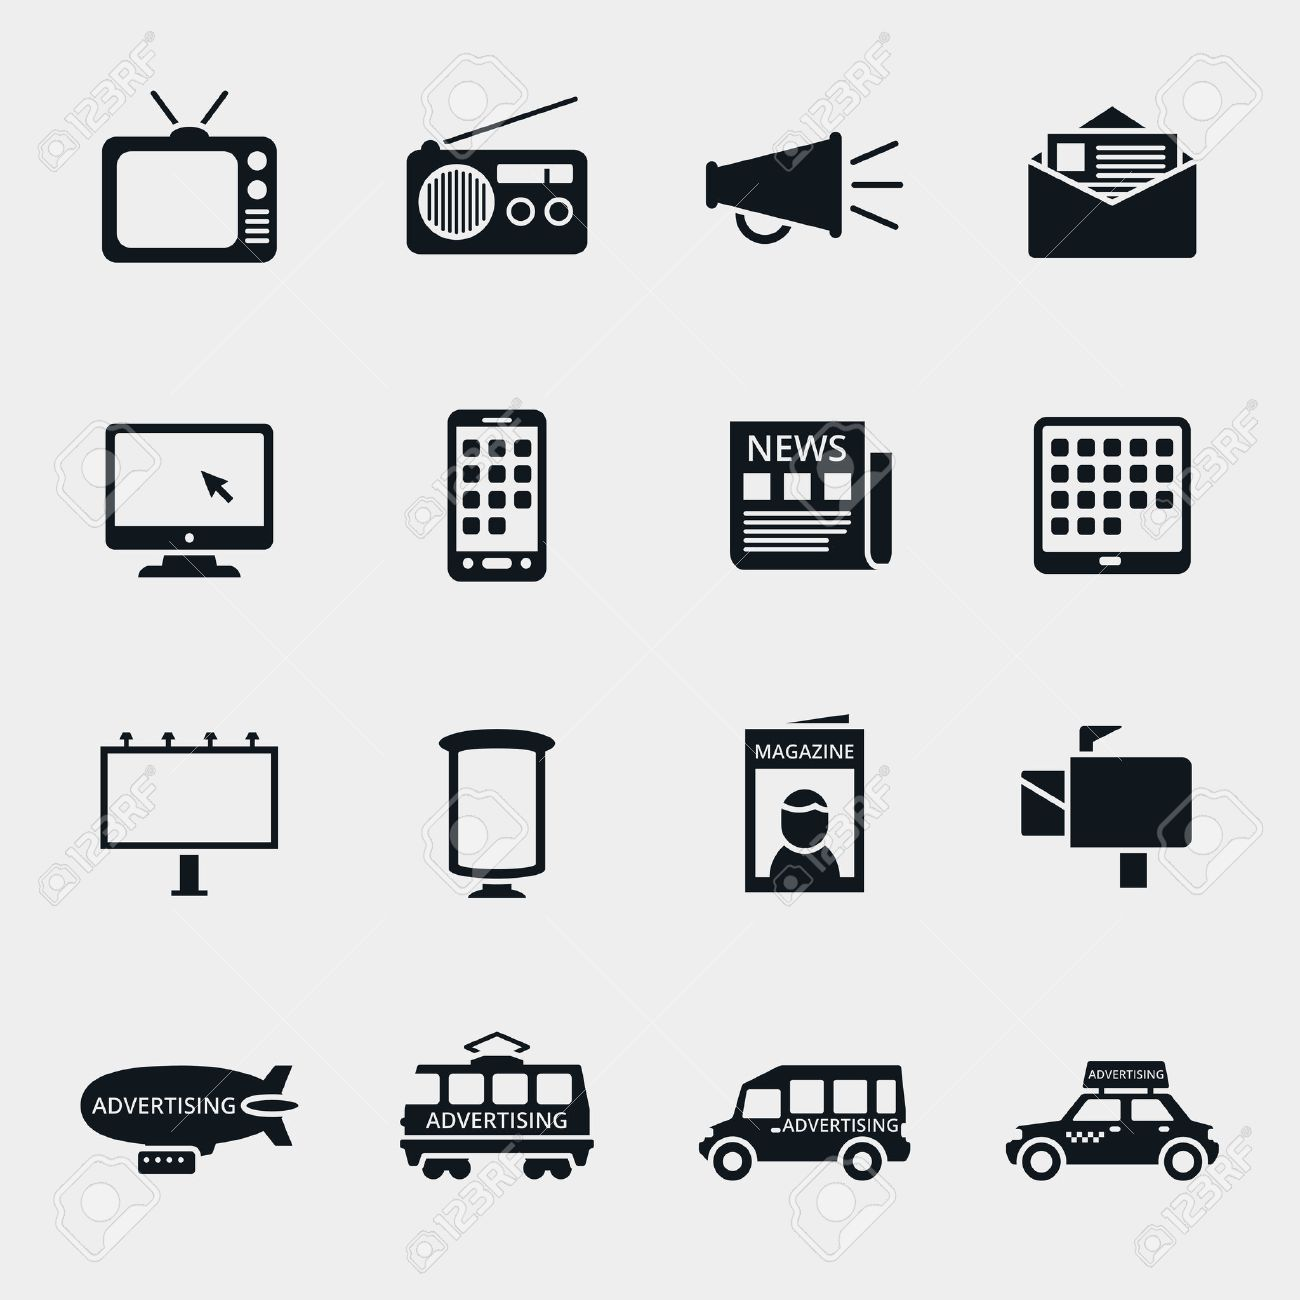 Vector advertising media silhouette icons set. Marketing and television, radio and internet, media content, multimedia market illustration - 41824733